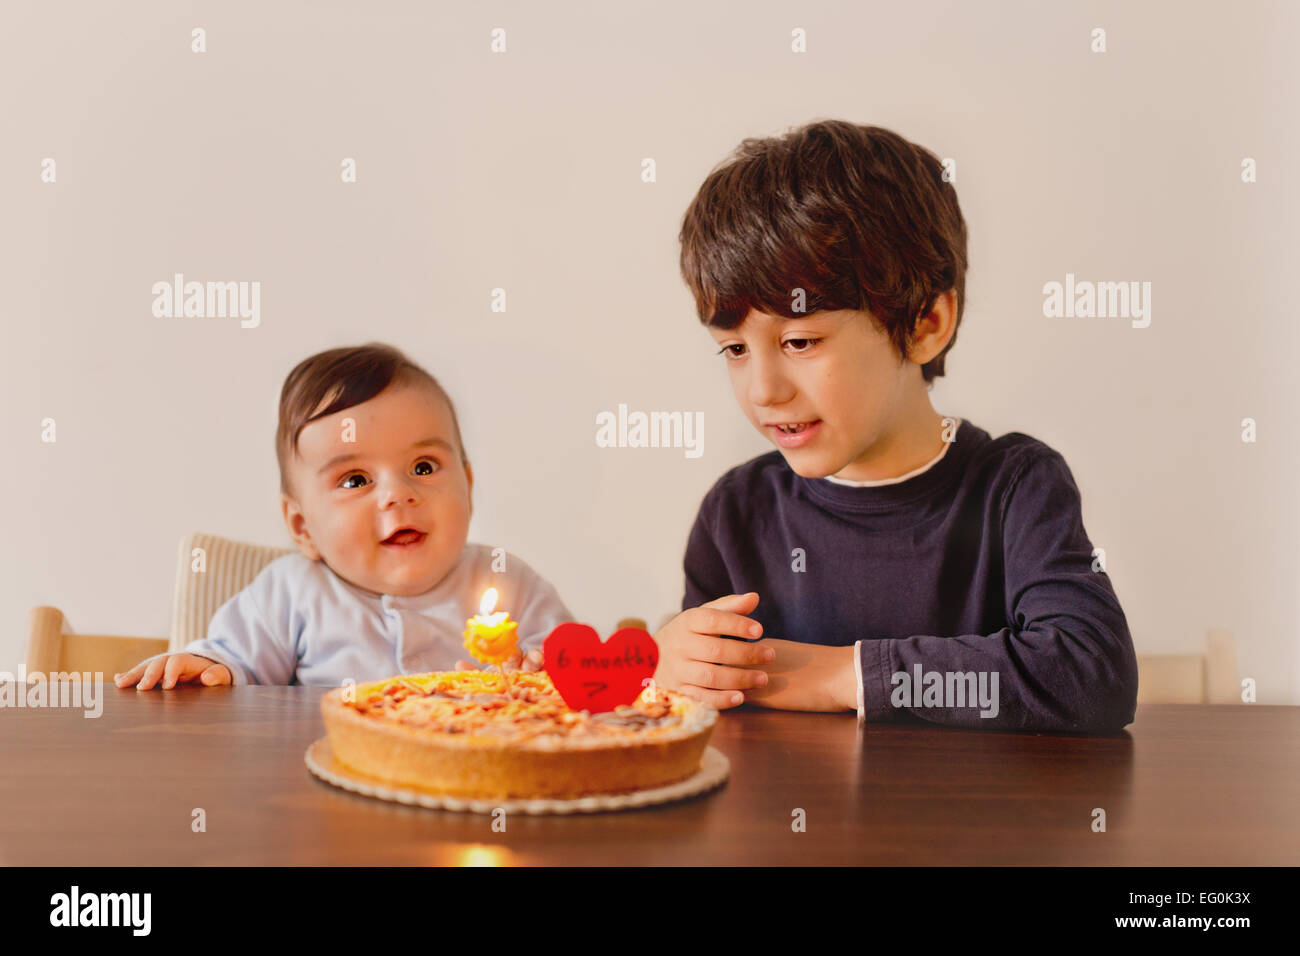 Siblings (6-12 months, 4-5) celebrating birthday - Stock Image